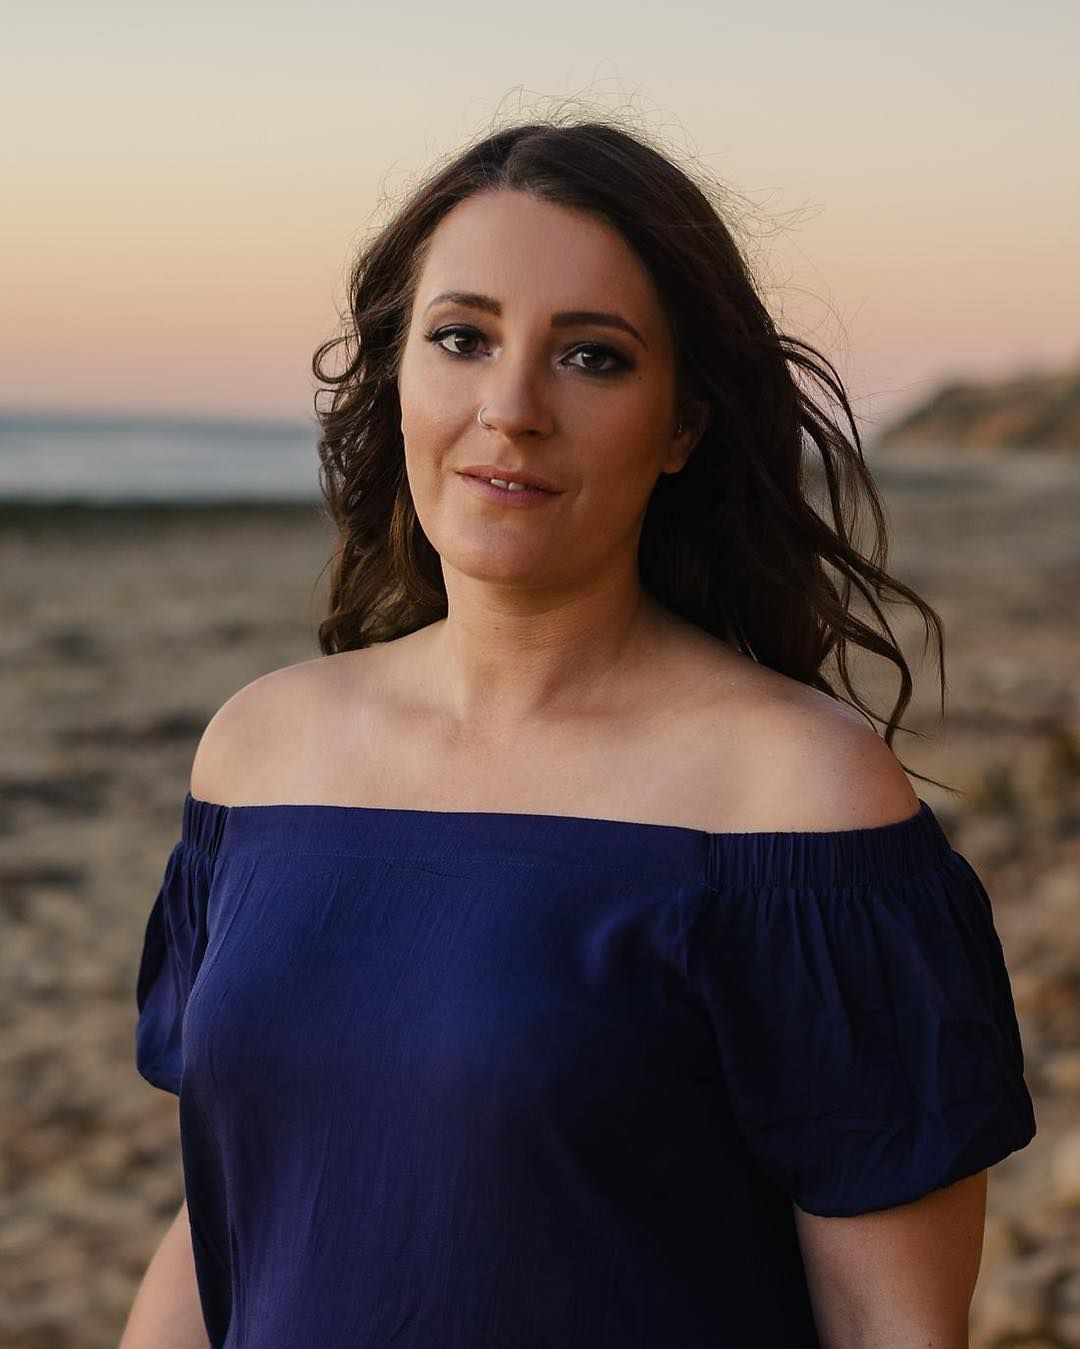 Strong beautiful and brave.  See more of Melissa's beach photoshoot on the blog and keep an eye out for her story on @endometriosis_awareness_adl.  Link in bio! . . . #endometriosis #endometriosisawareness #endometriosiswarrior #endo #endoaustralia #endometriosisaustralia #1in10 #adelaidephotographer #JessBoltonPortraits #sunsetphotoshoot #chasinglight #moanabeach